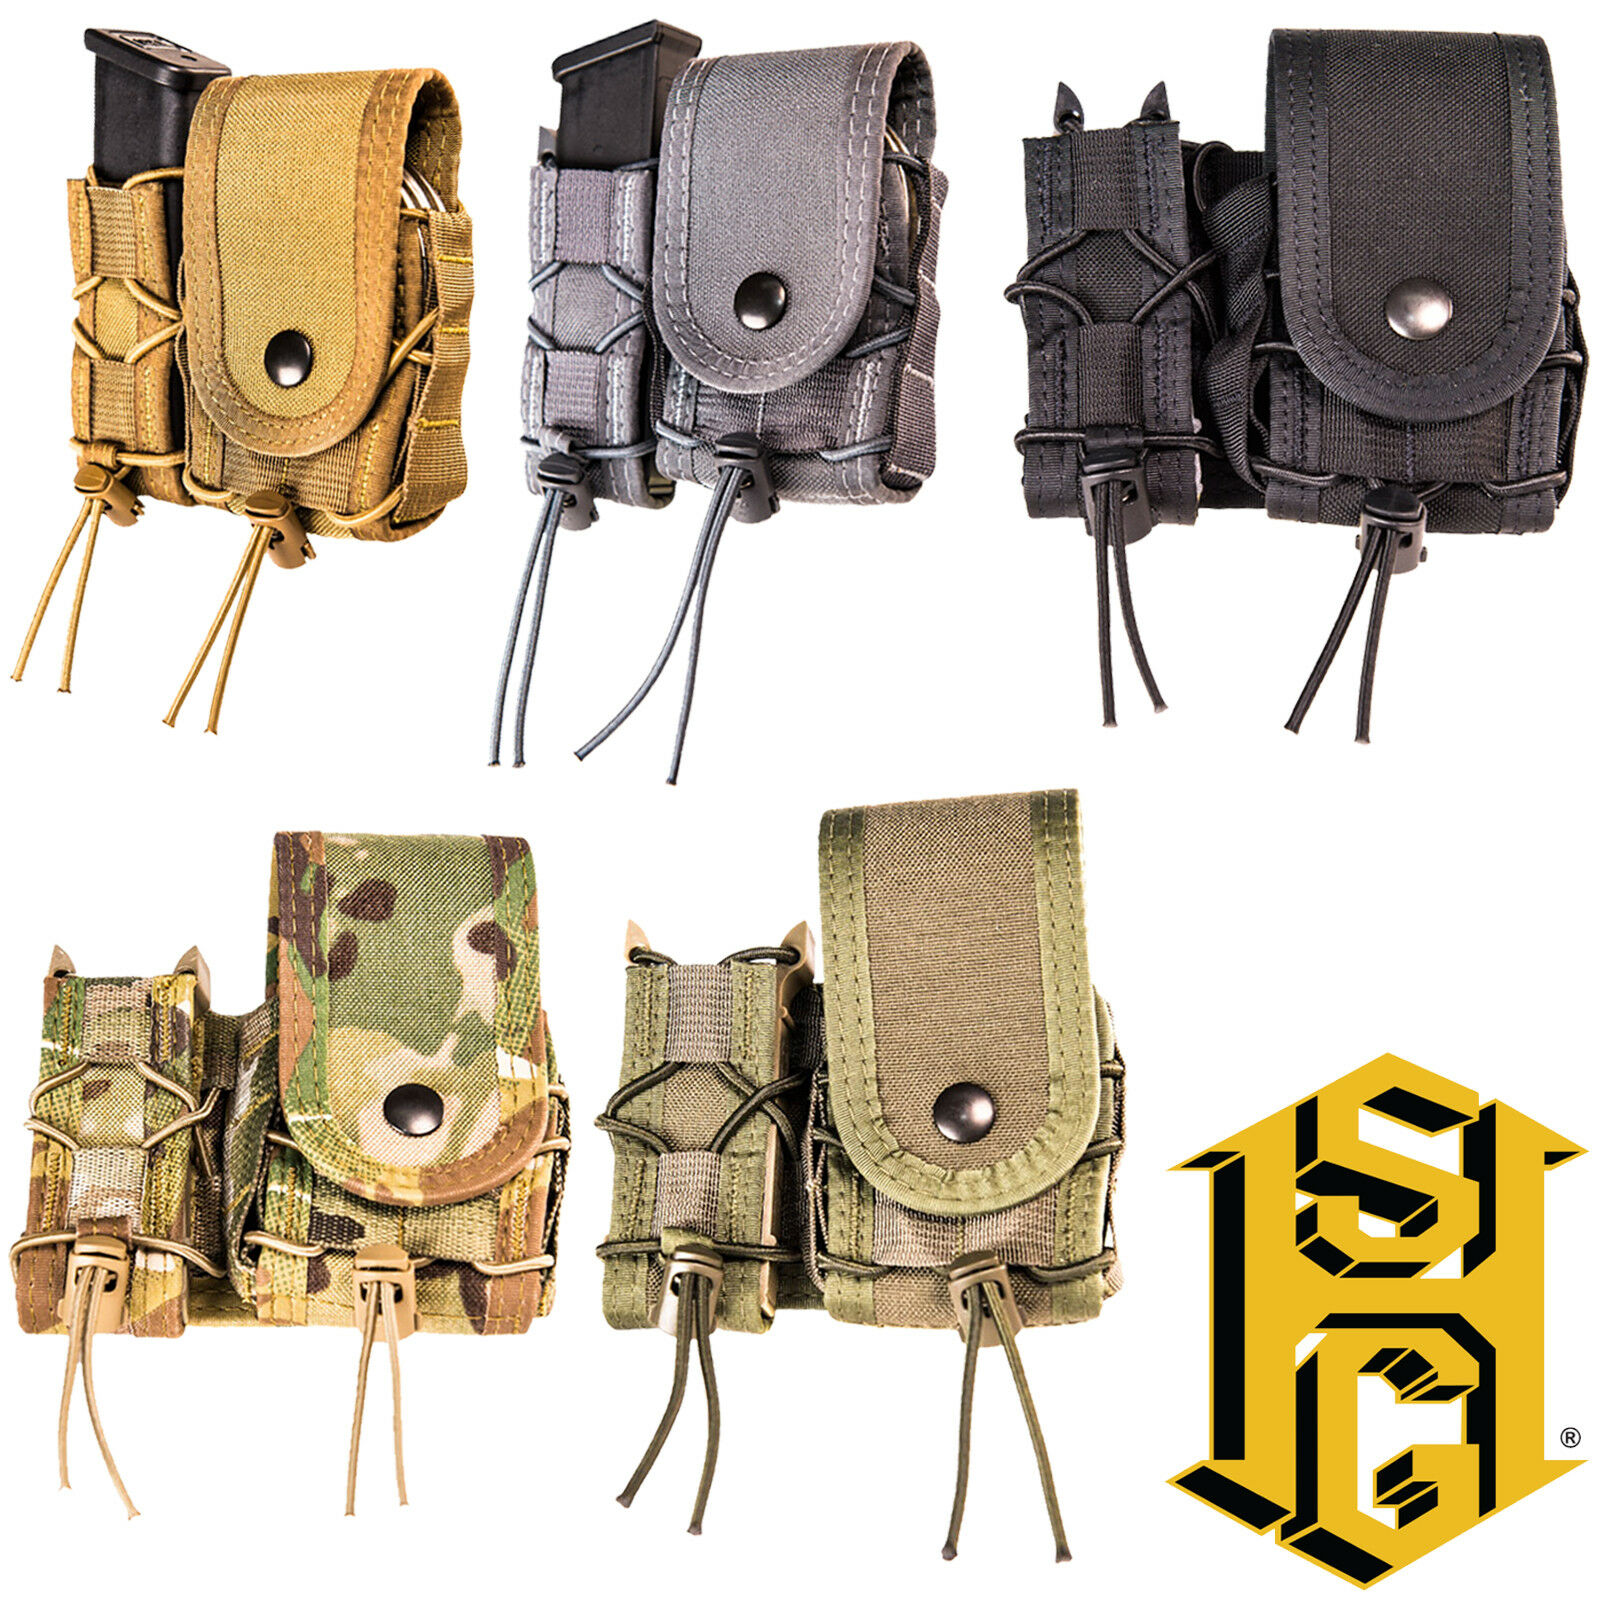 HSGI Tactical LEO TACO Covered Belt Mounted Pistol Magazine Mag Handcuff Pouch